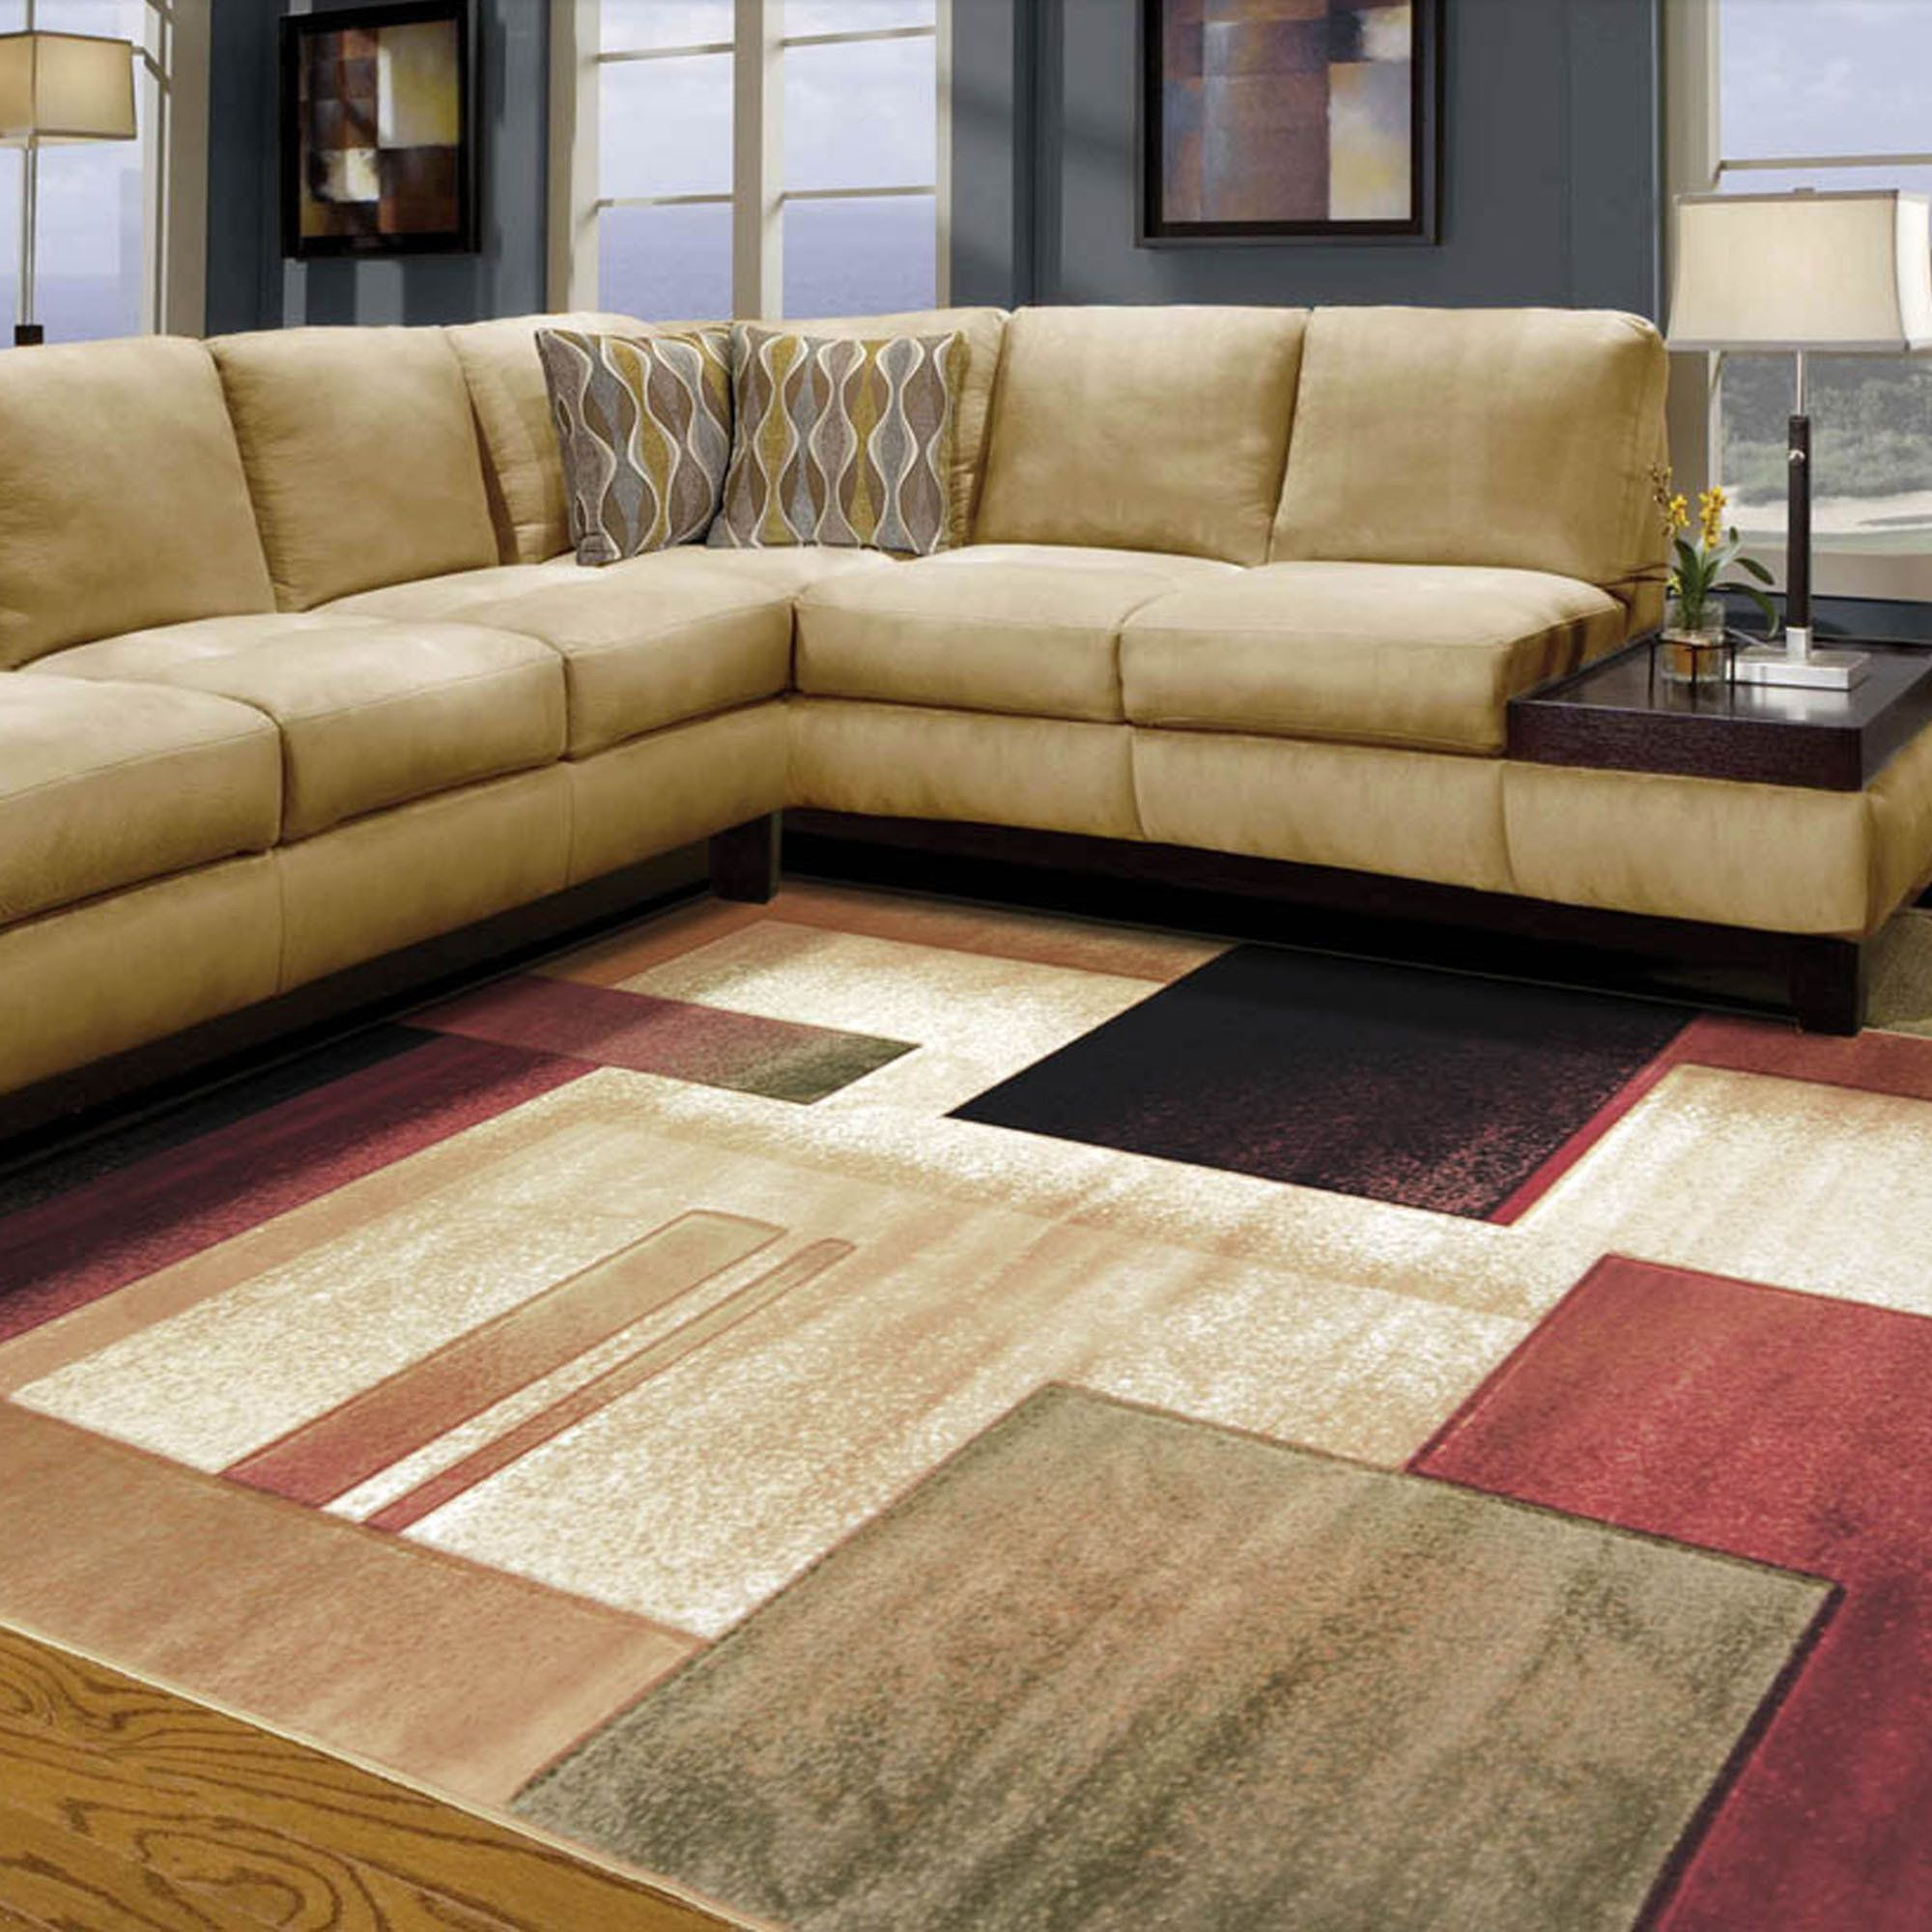 Modern Living Room Rugs modern composition area rugs | modern, house interior design and